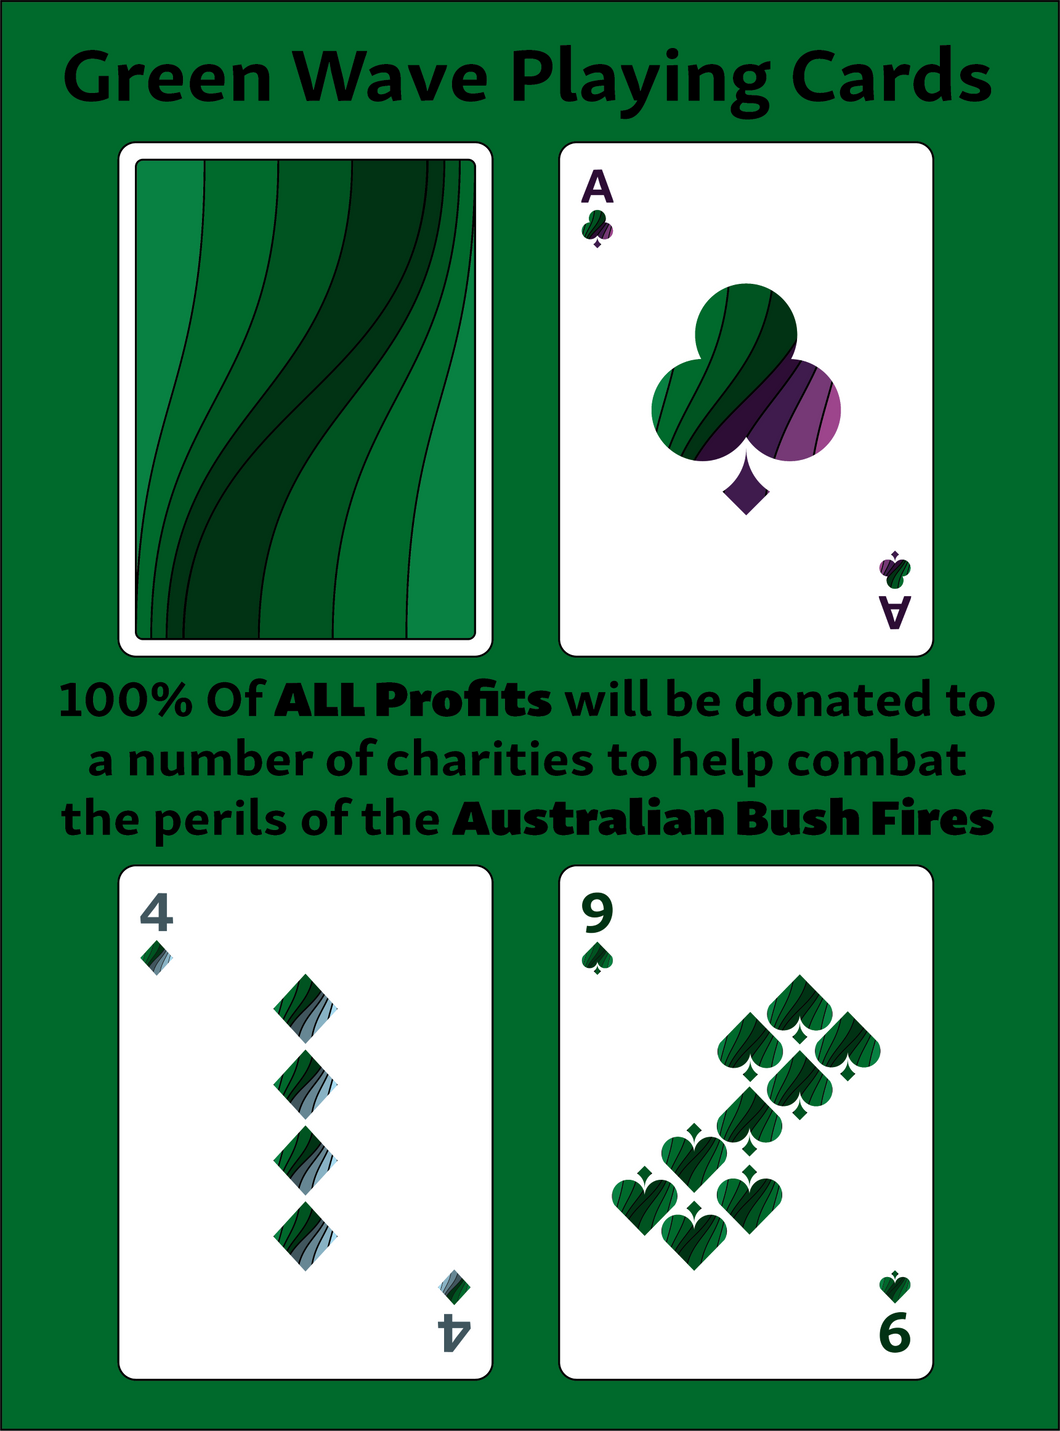 Green Wave Playing Cards - Pre-order